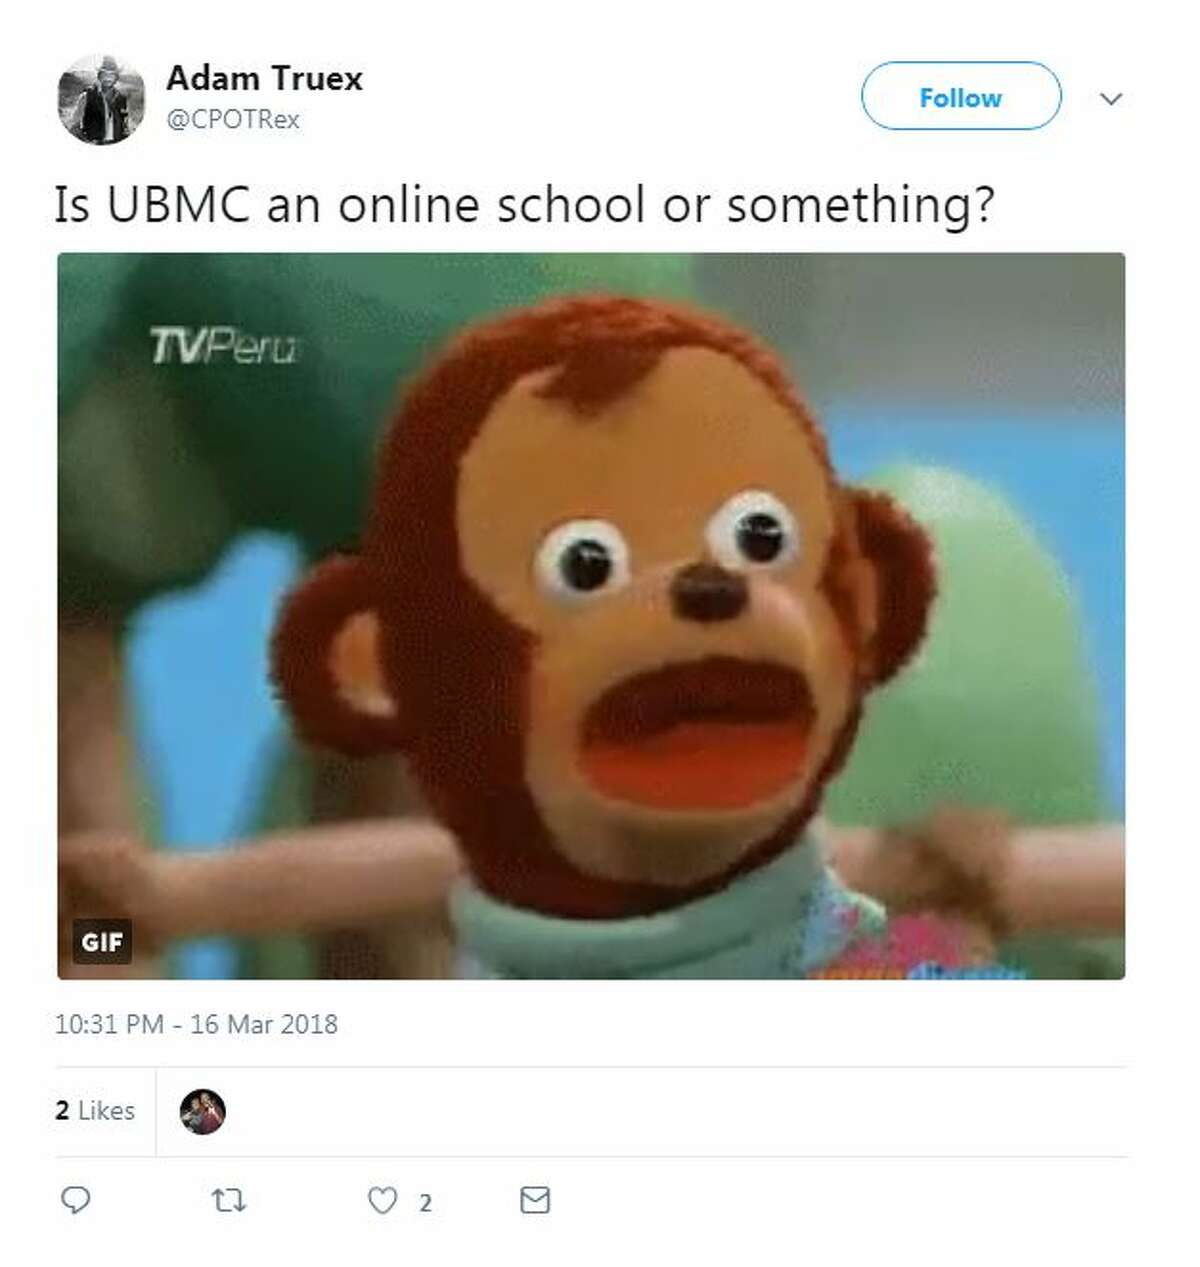 Is UBMC an online school or something?